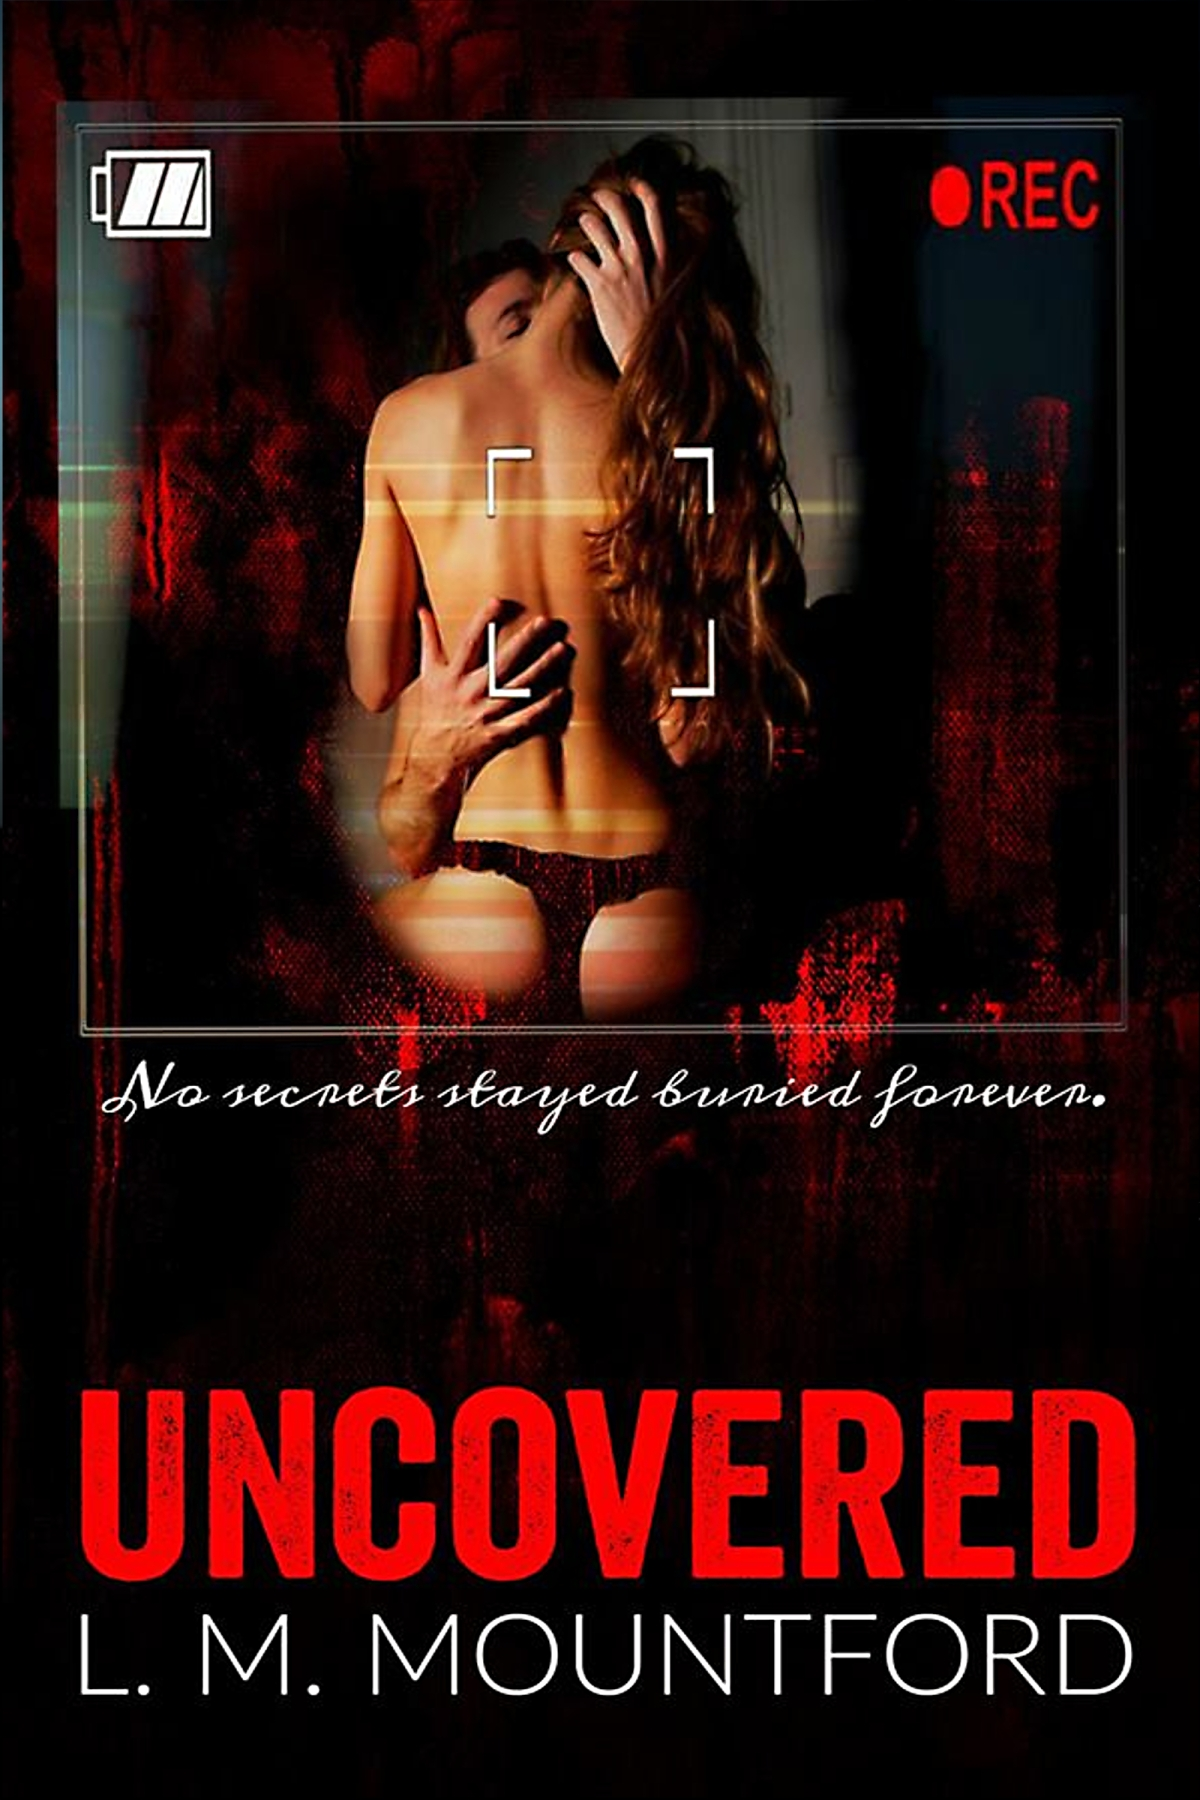 Uncovered by L. M.Mountford